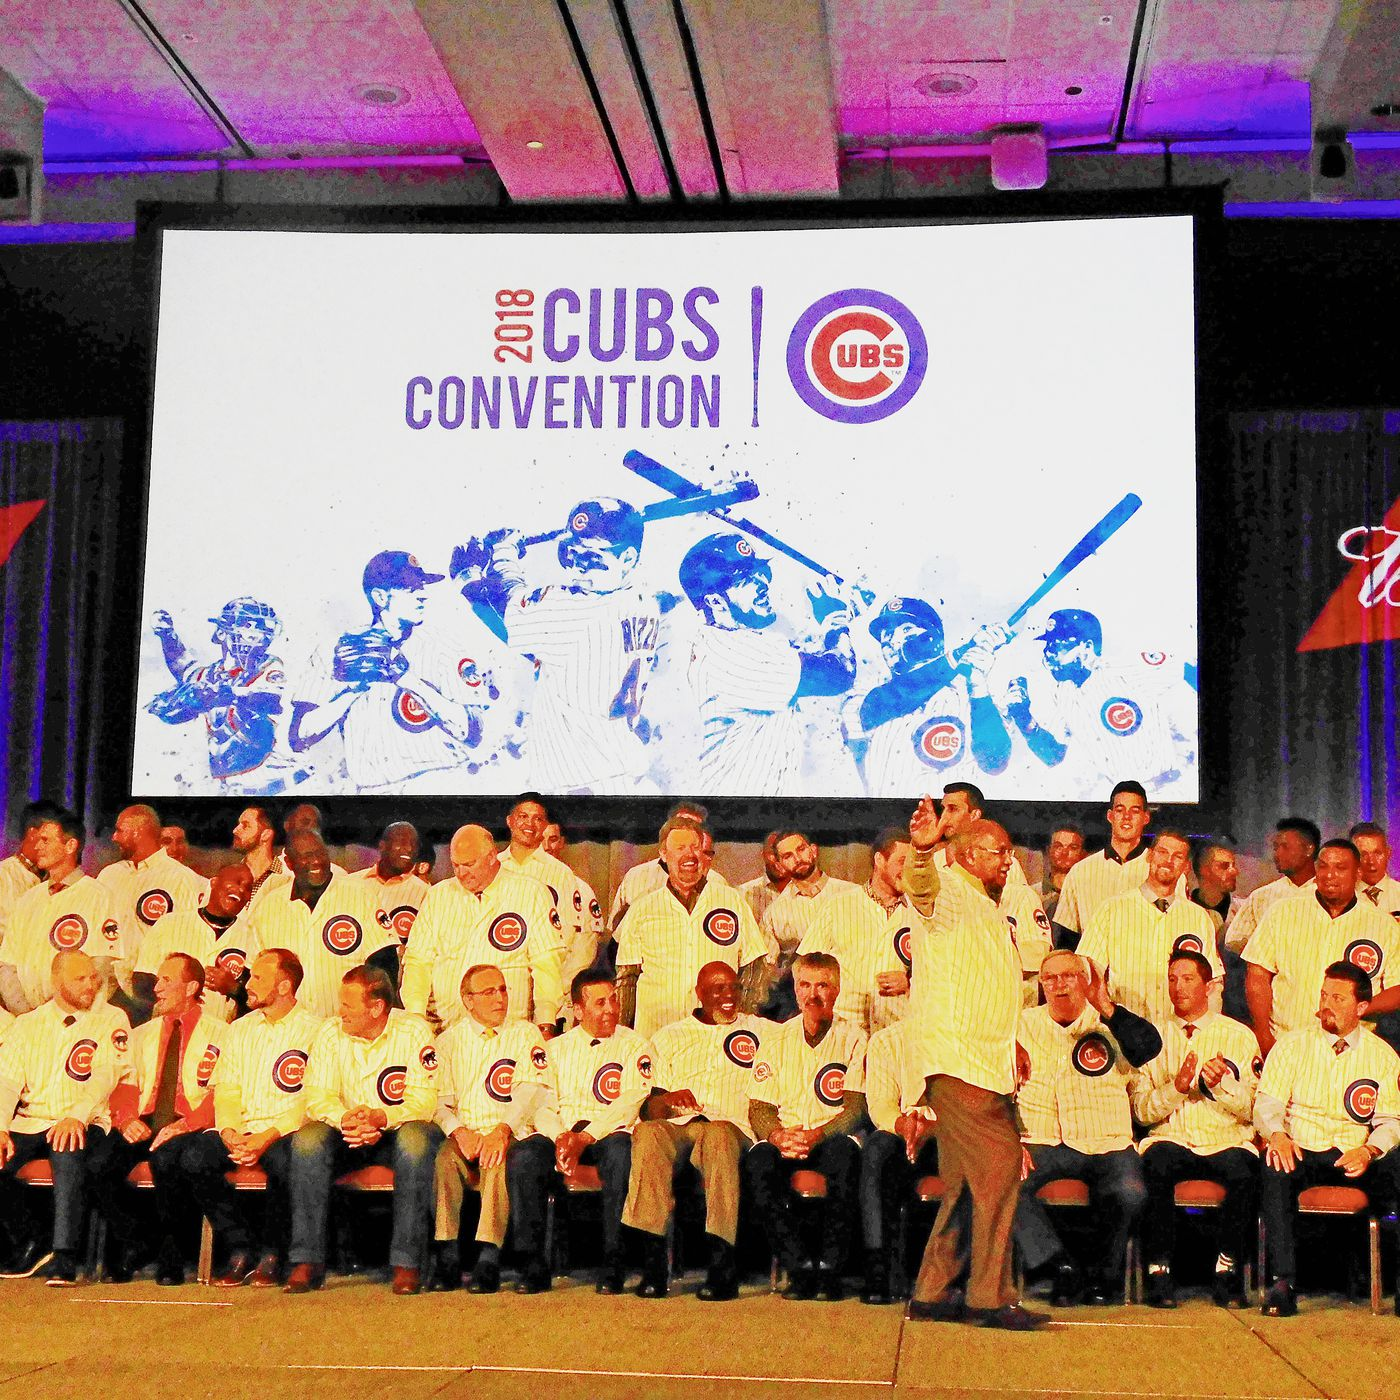 Cubs announce 2019 convention attendees, sessions - Bleed